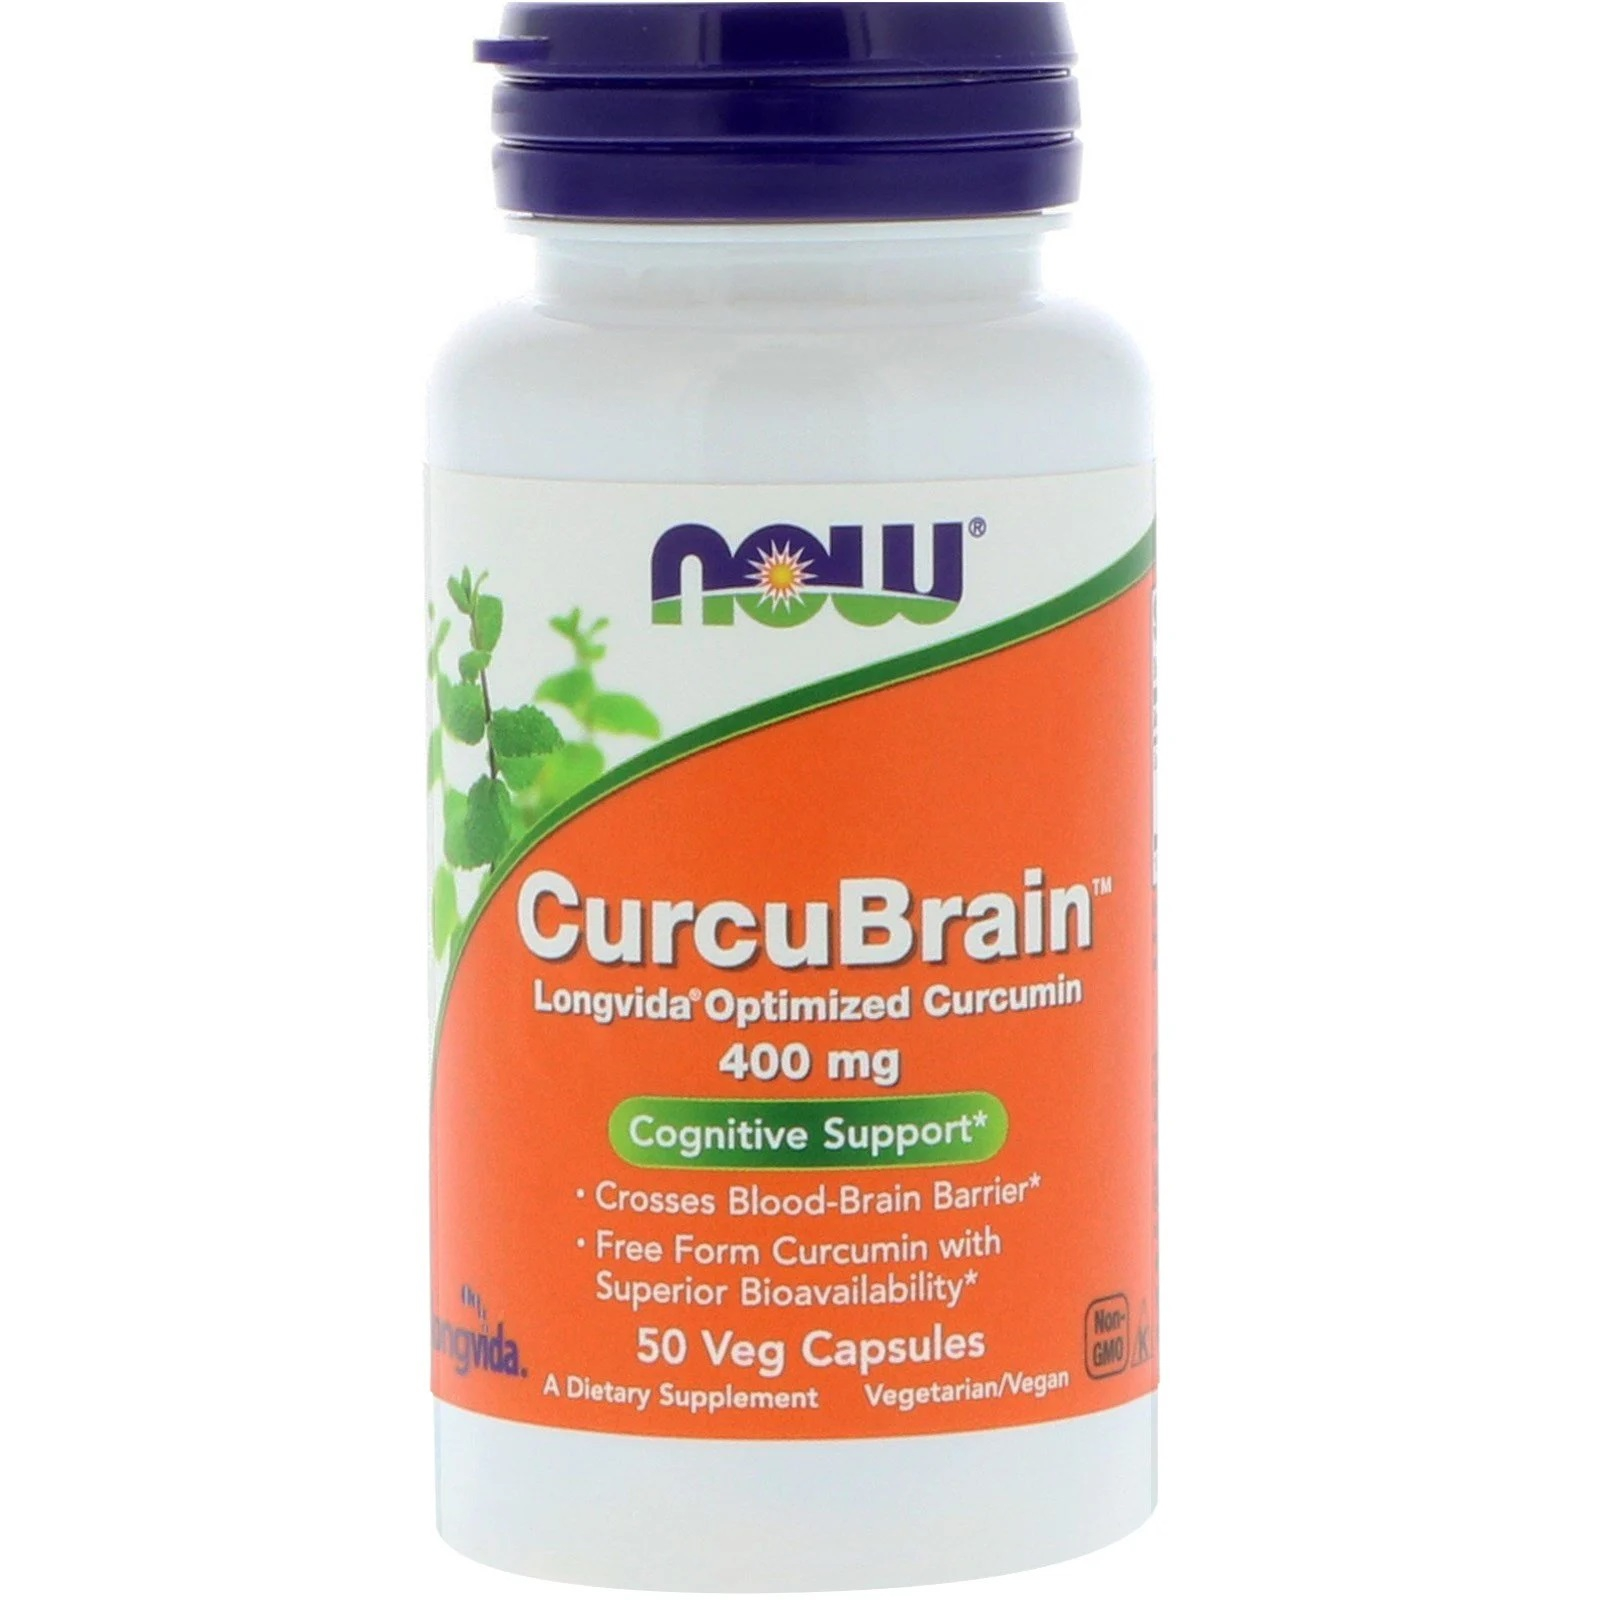 Image of CurcuBrain Cognitive Support 400 mg (50 Vegetarian Capsules) - Now Foods 0733739023957